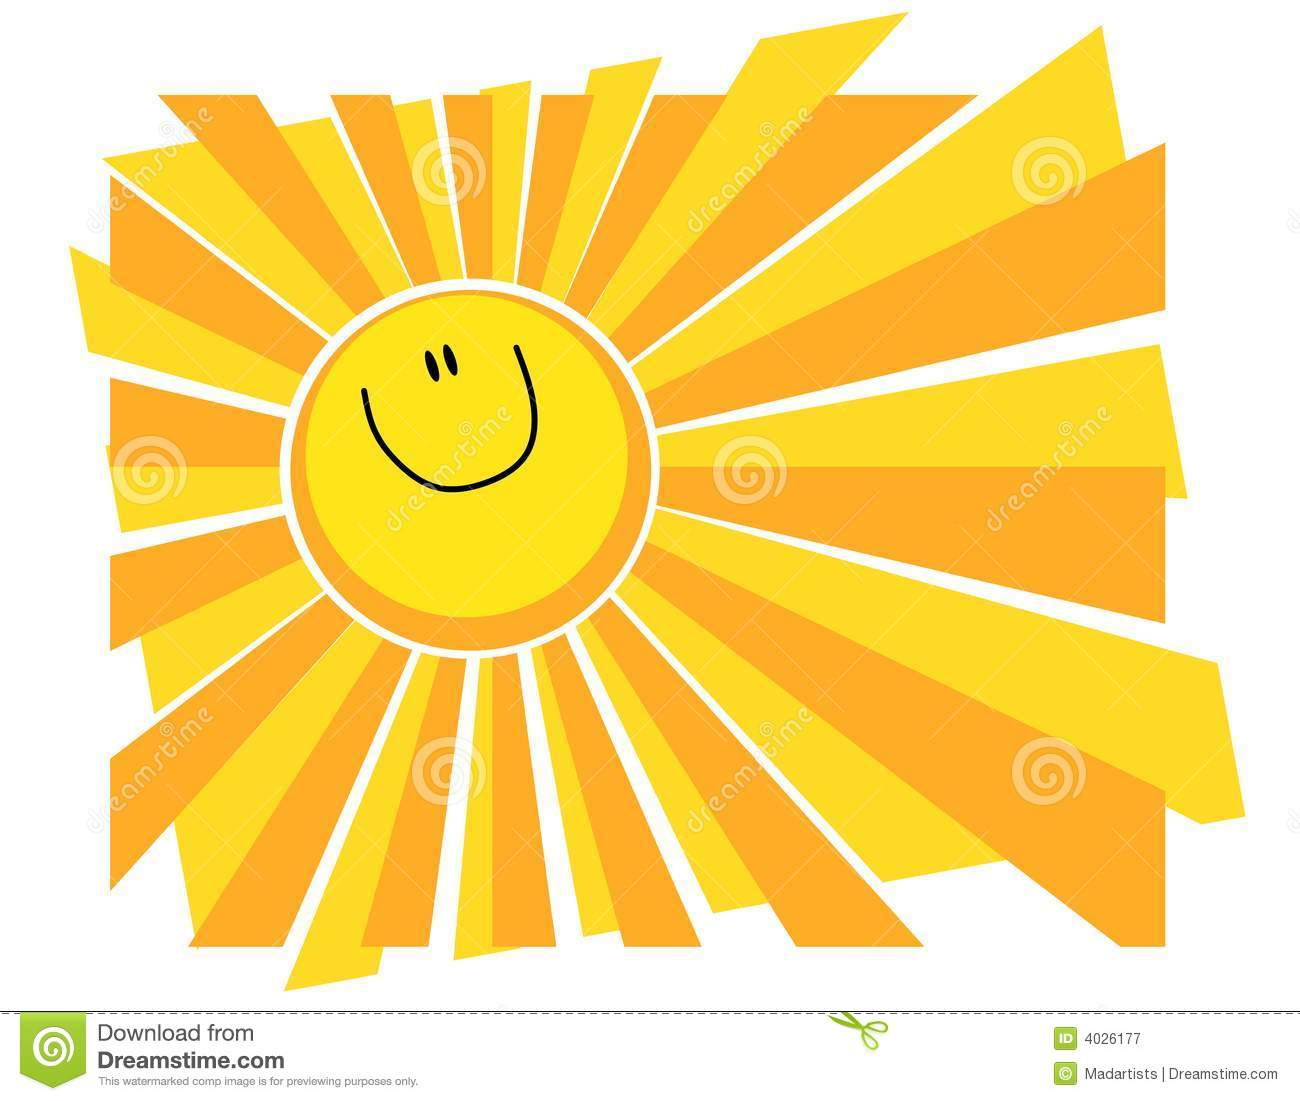 Smiling sun images - Happy Smiling Sun Summer Background